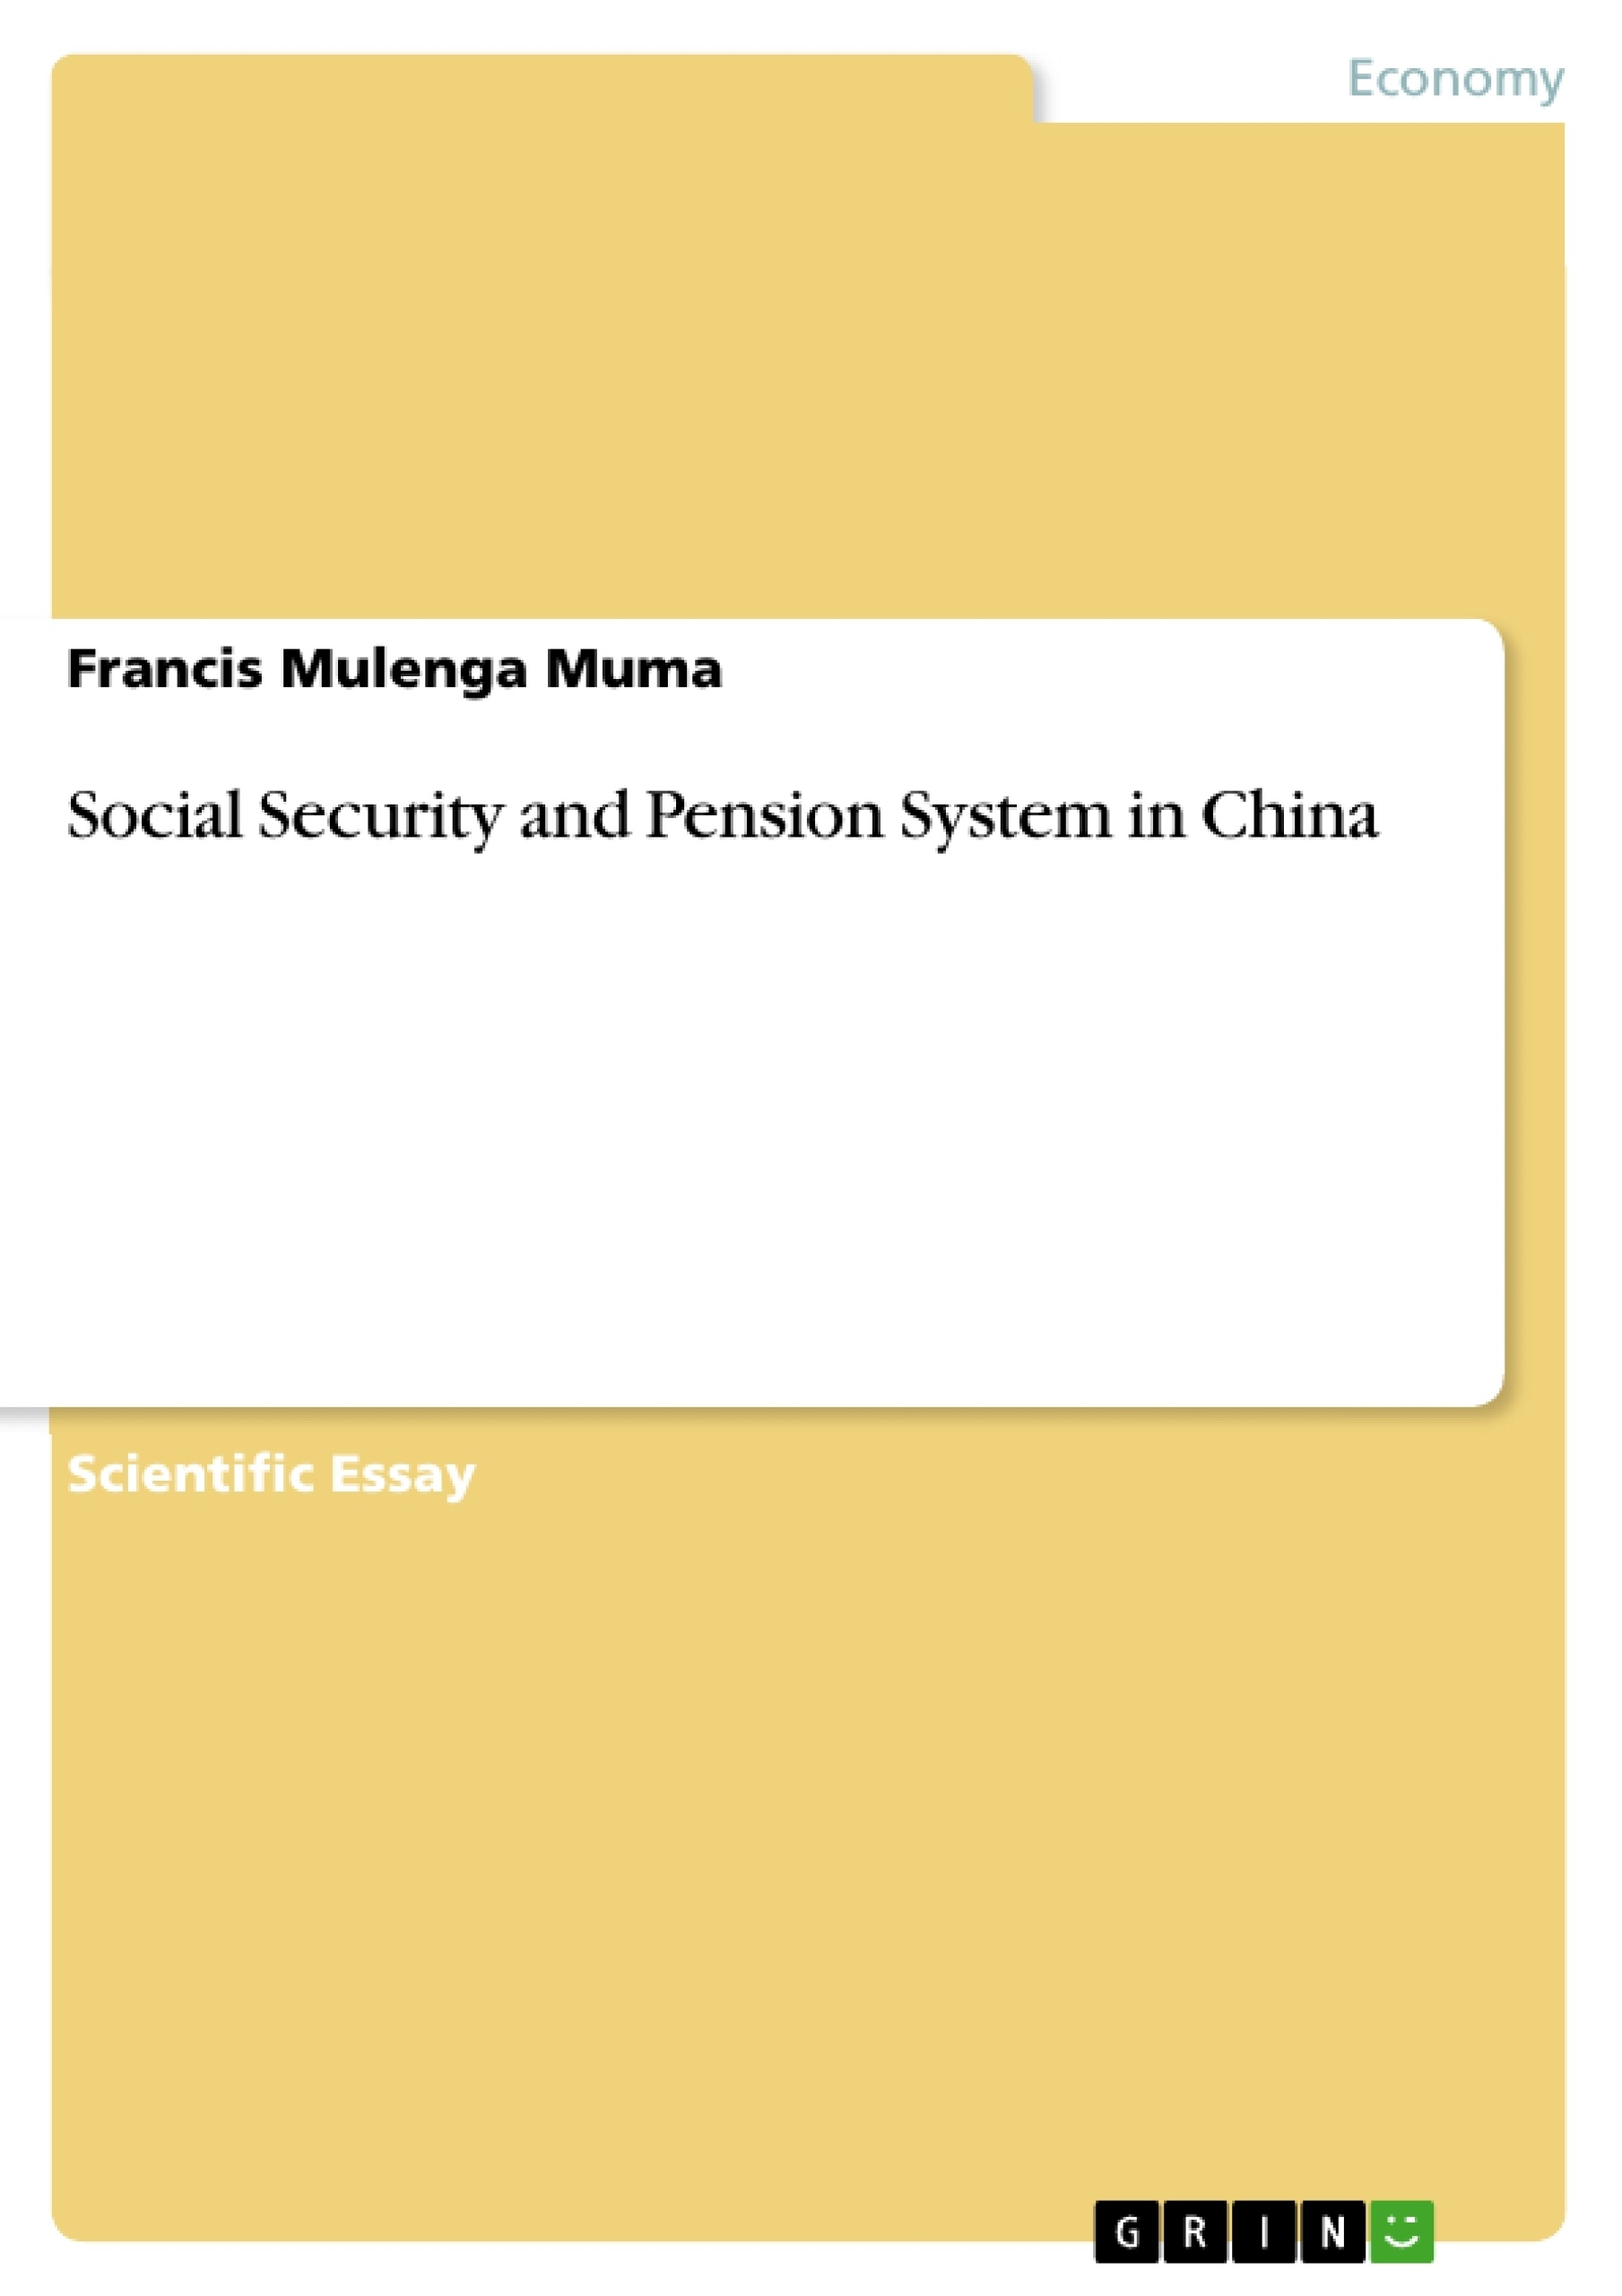 Title: Social Security and Pension System in China